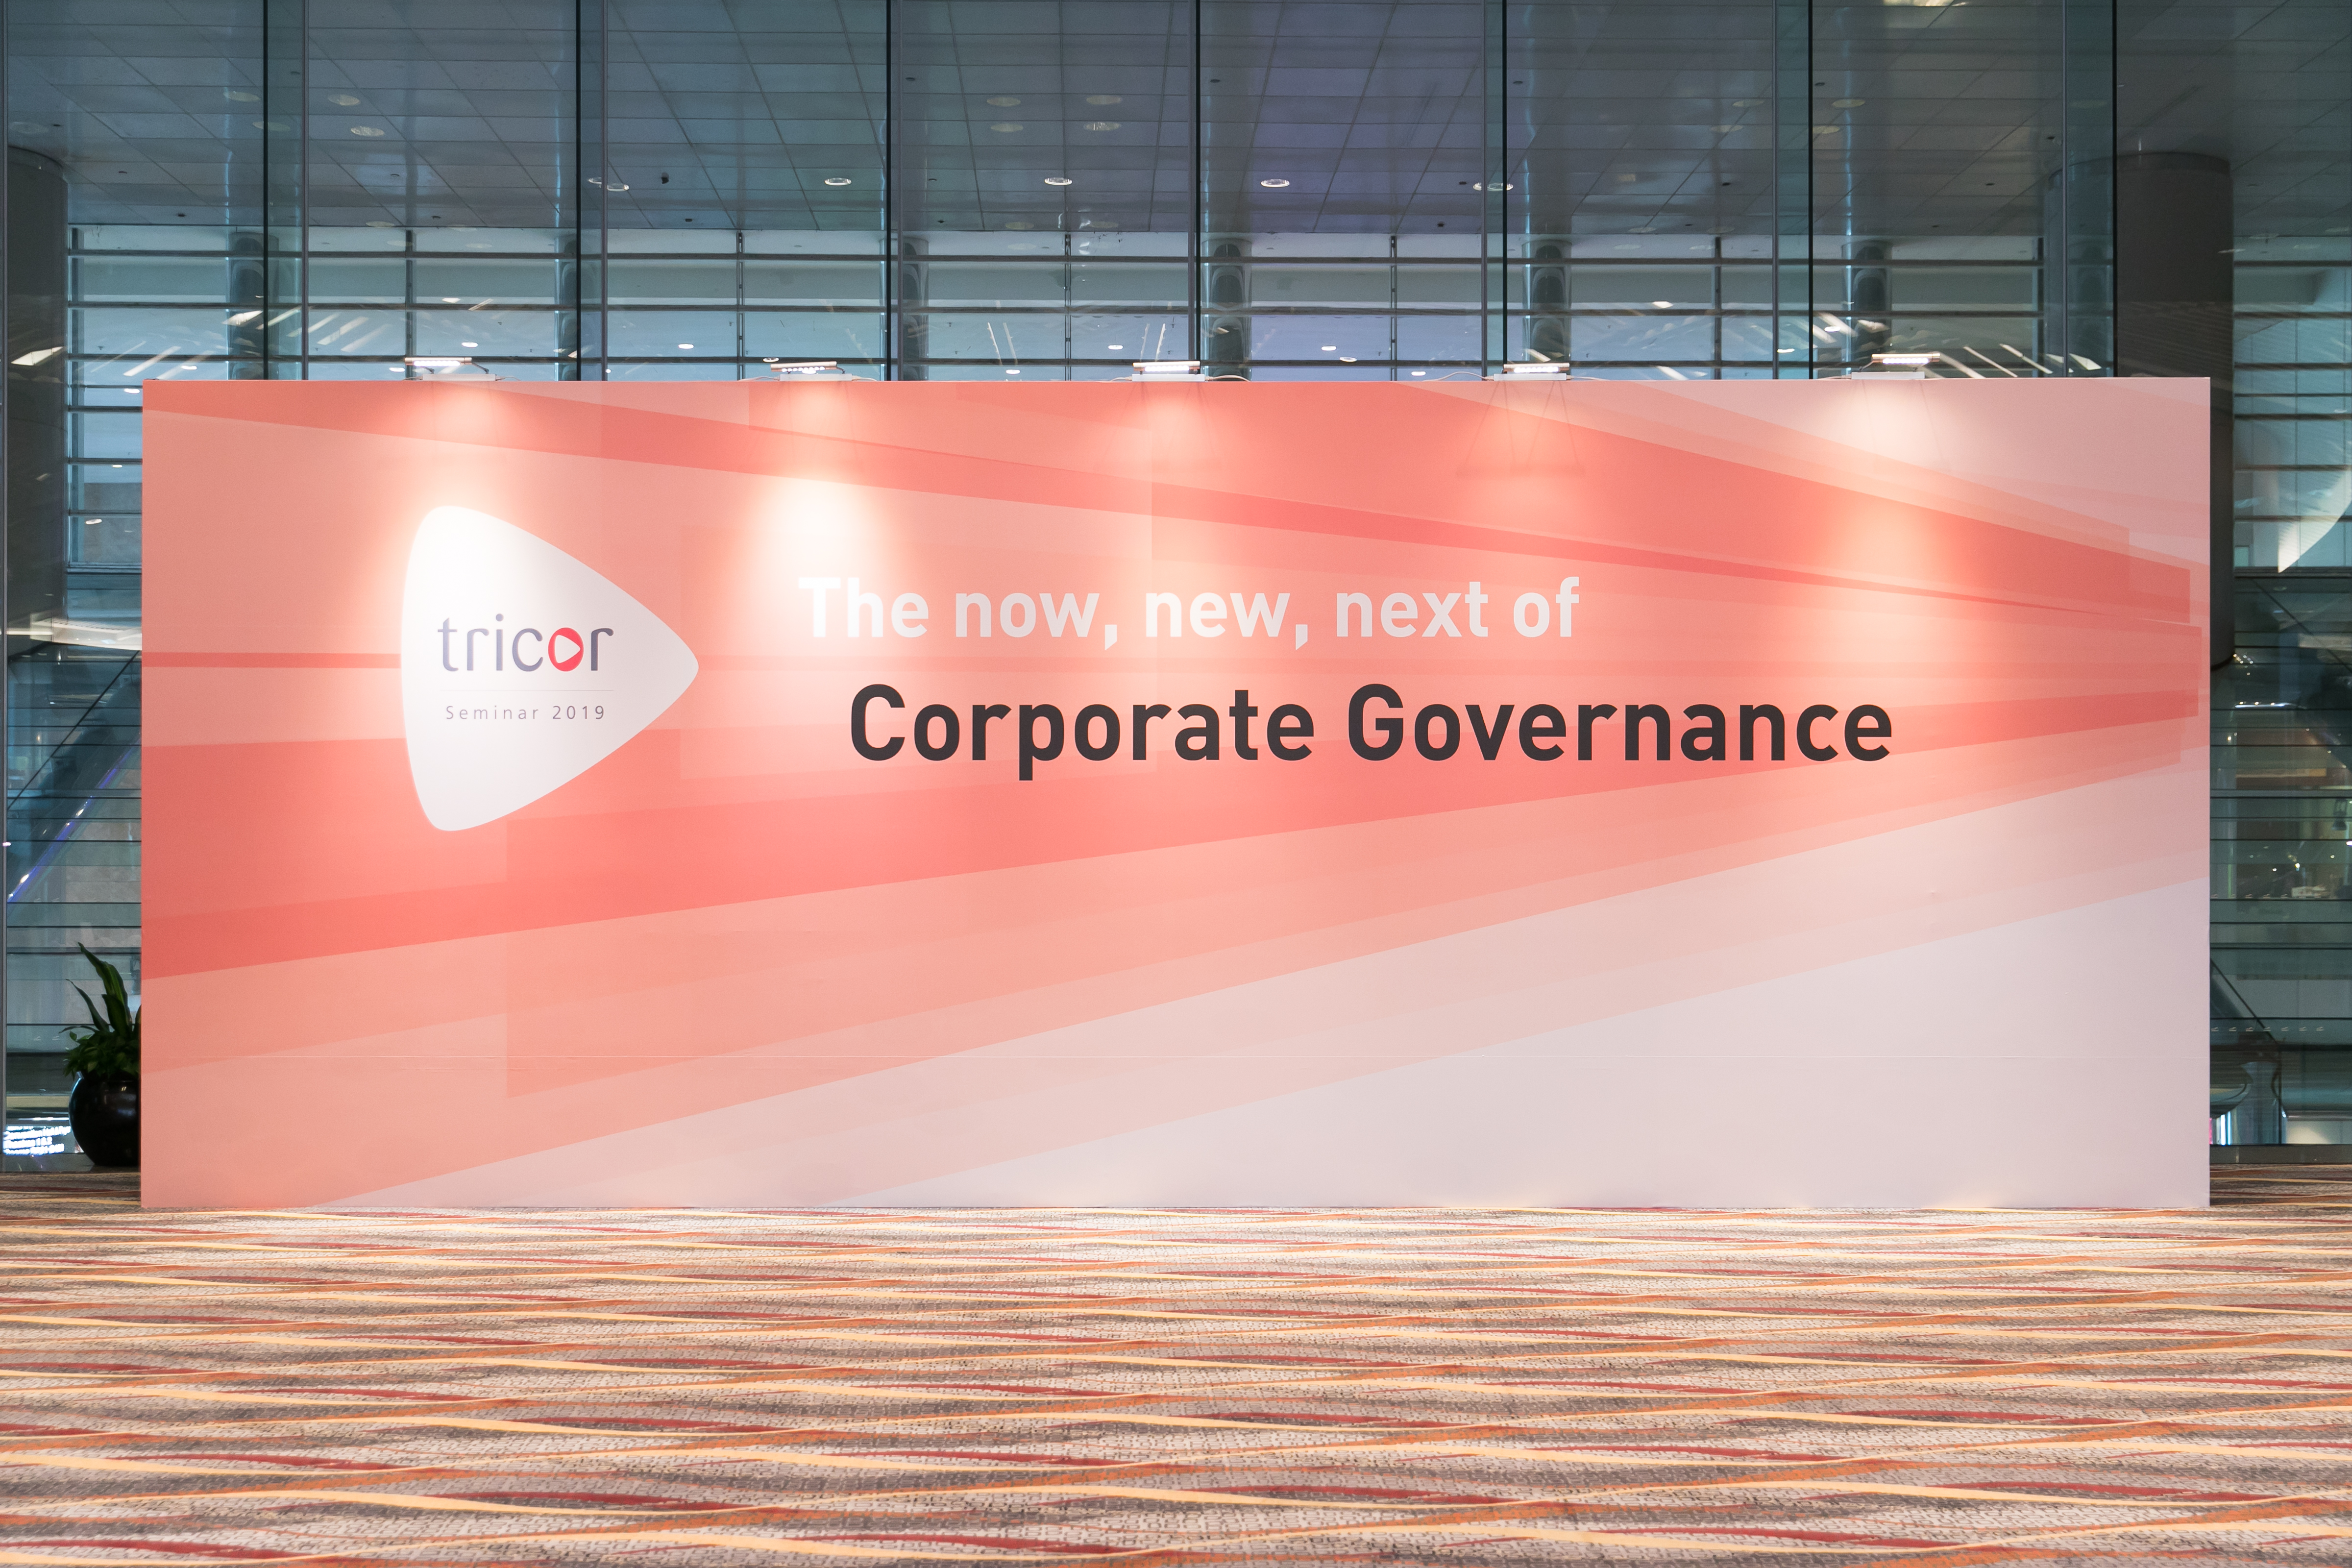 Recap of Tricor Seminar 2019: The now, new, next of Corporate Governance